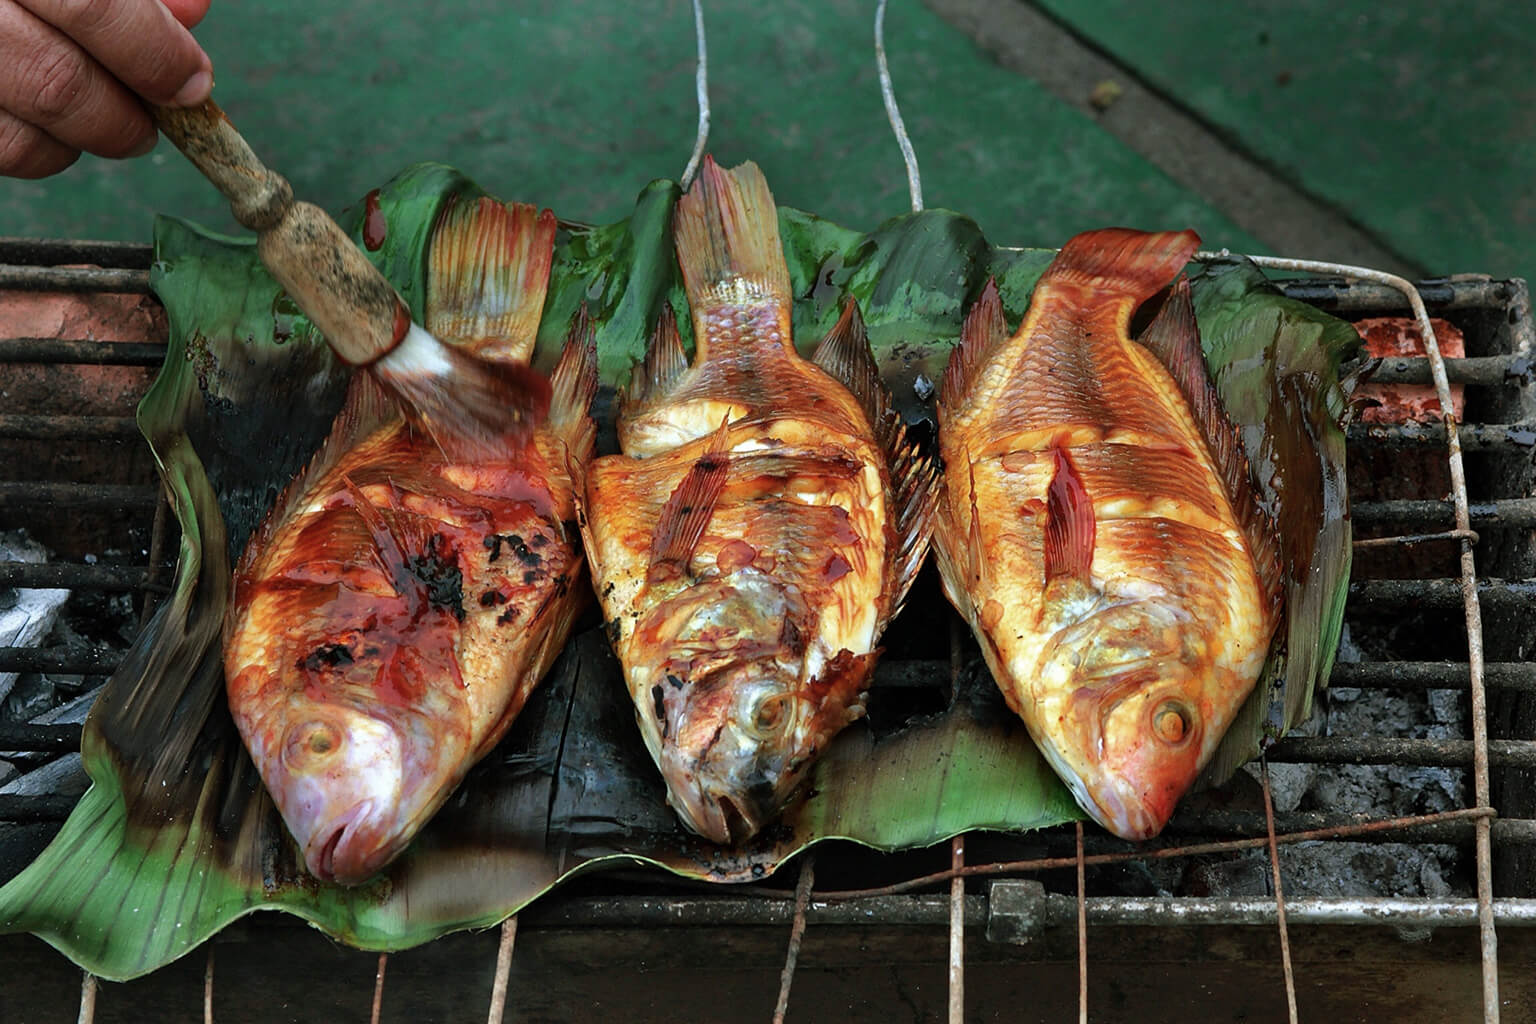 Three whole fished freshly grilled in banana leaves.